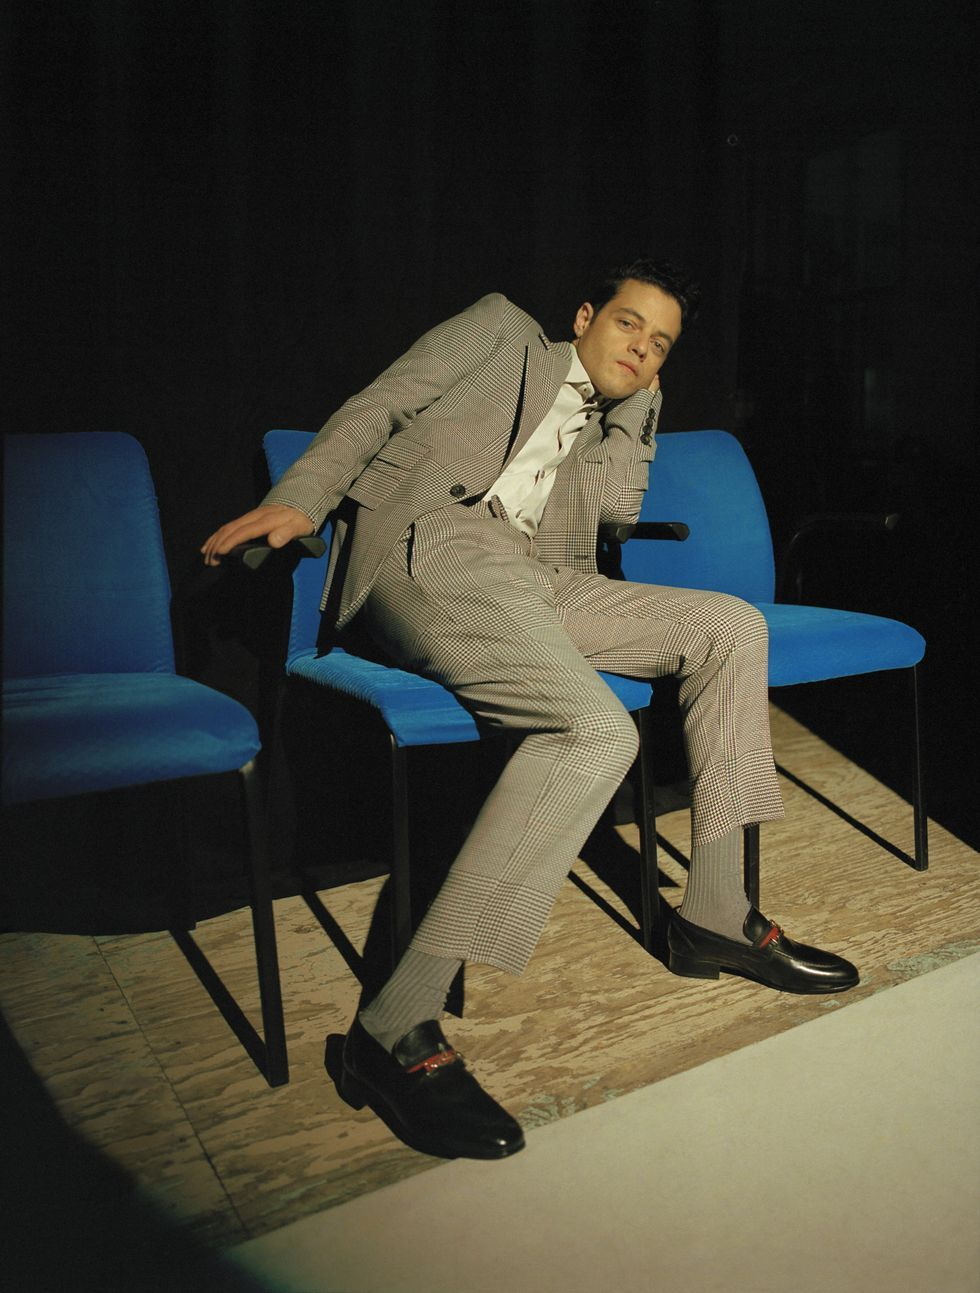 'No Time To Die' Star Rami Malek Addresses Those Dr No Rumours. Kind Of. Ish.